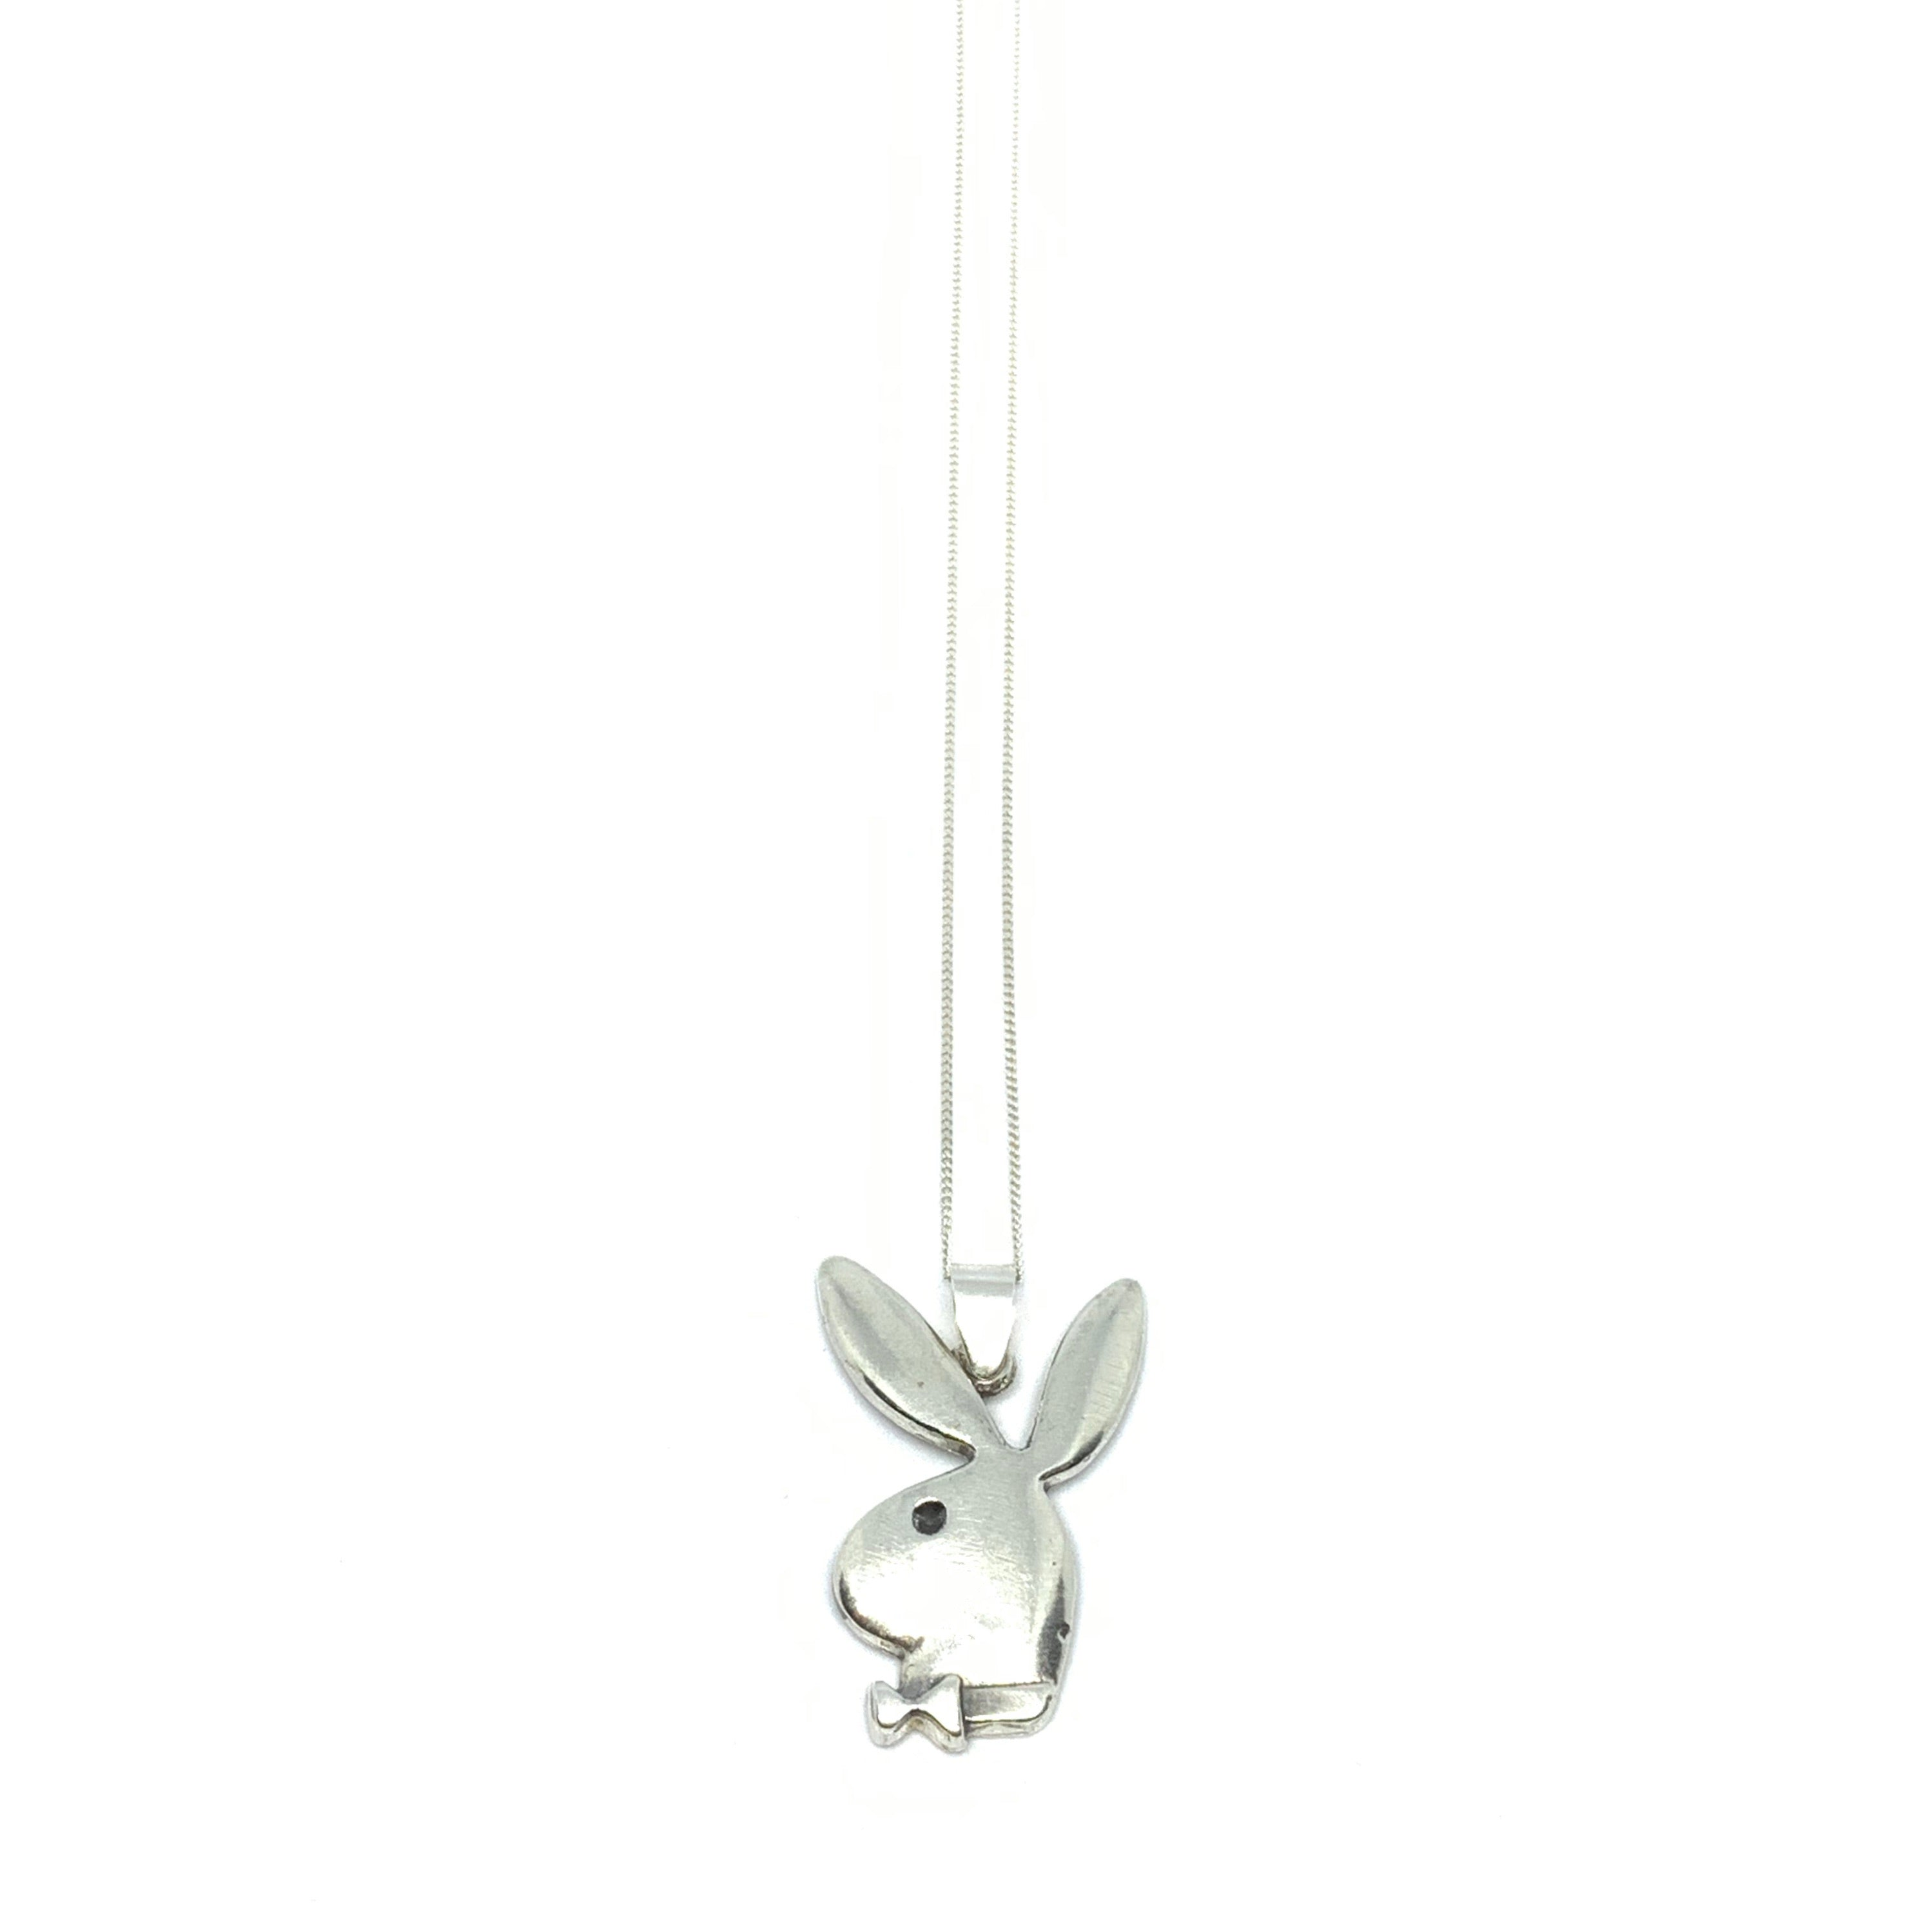 Handcrafted Sterling SIlver | Playboy Necklace | SEAMS Jewelry